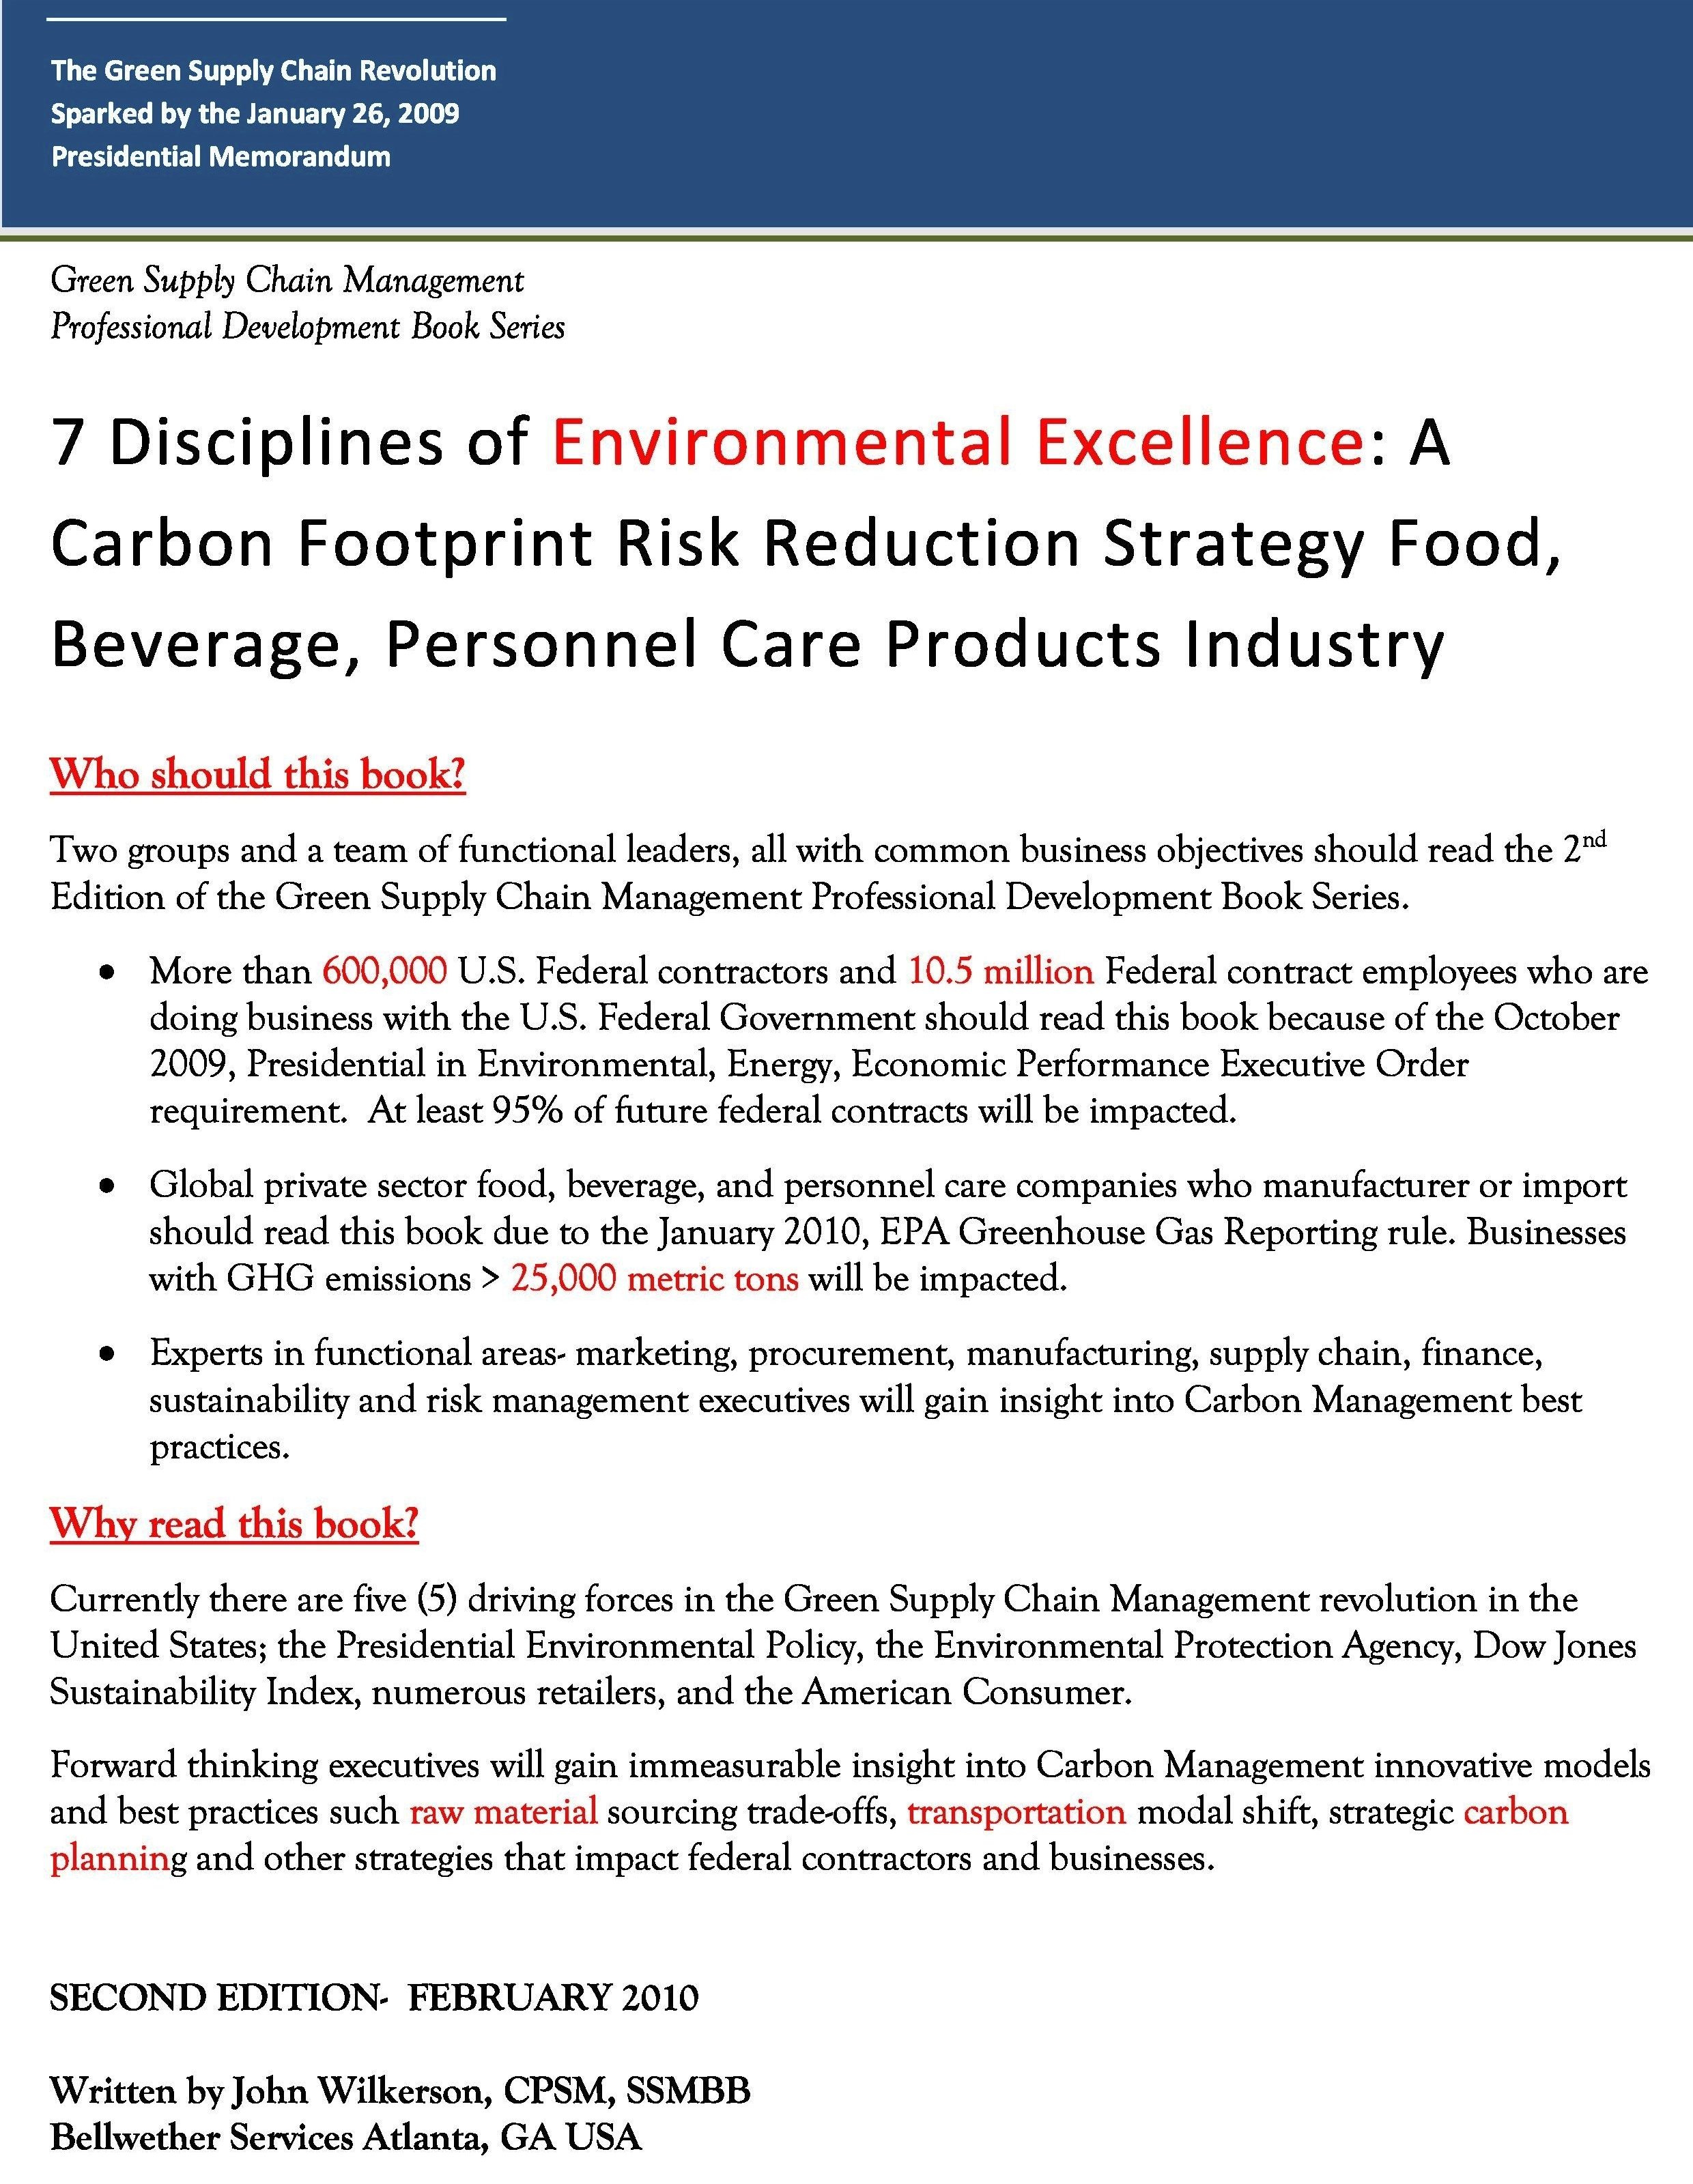 7 Disciplines of Global Supply Chain Environmental ExcellenceGreen Supply  Chain Management Book Series